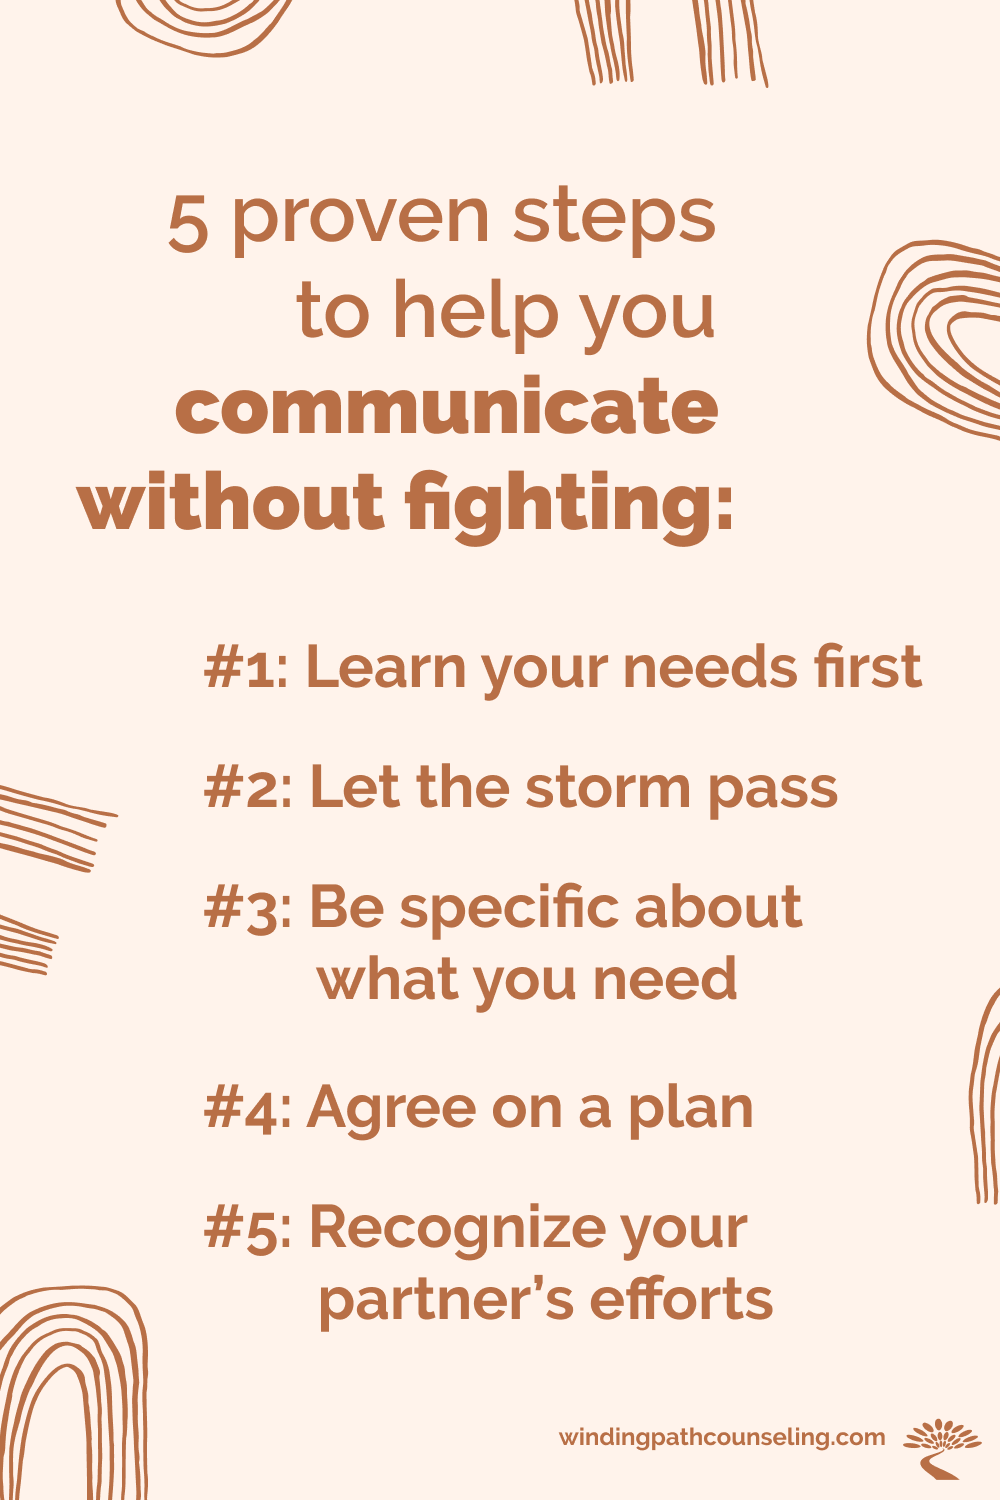 5 proven steps to communicate with your husband, wife, spouse, or partner without fighting